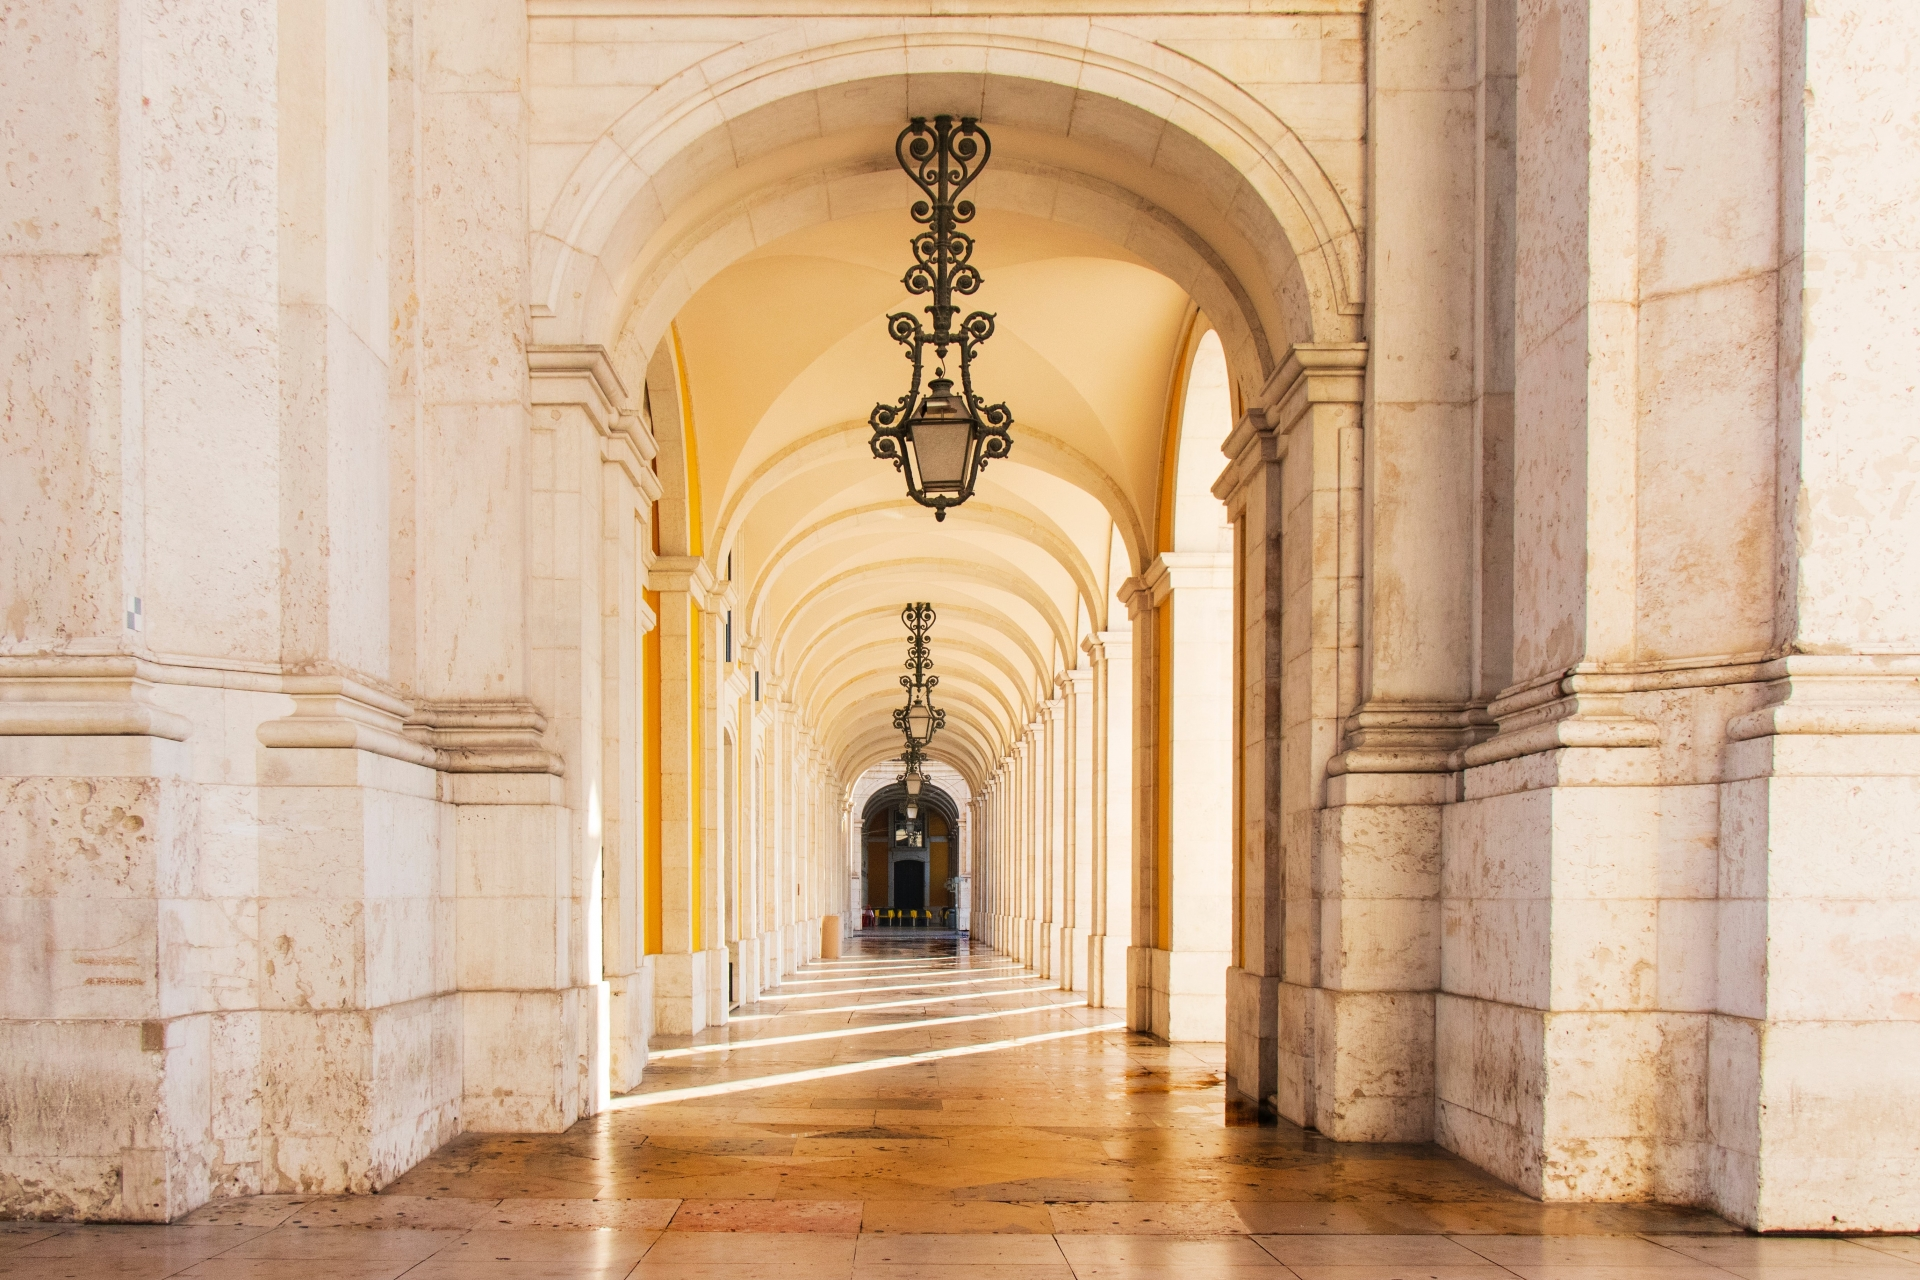 LisboaCool_Blog_6 Activities to try in Lisbon